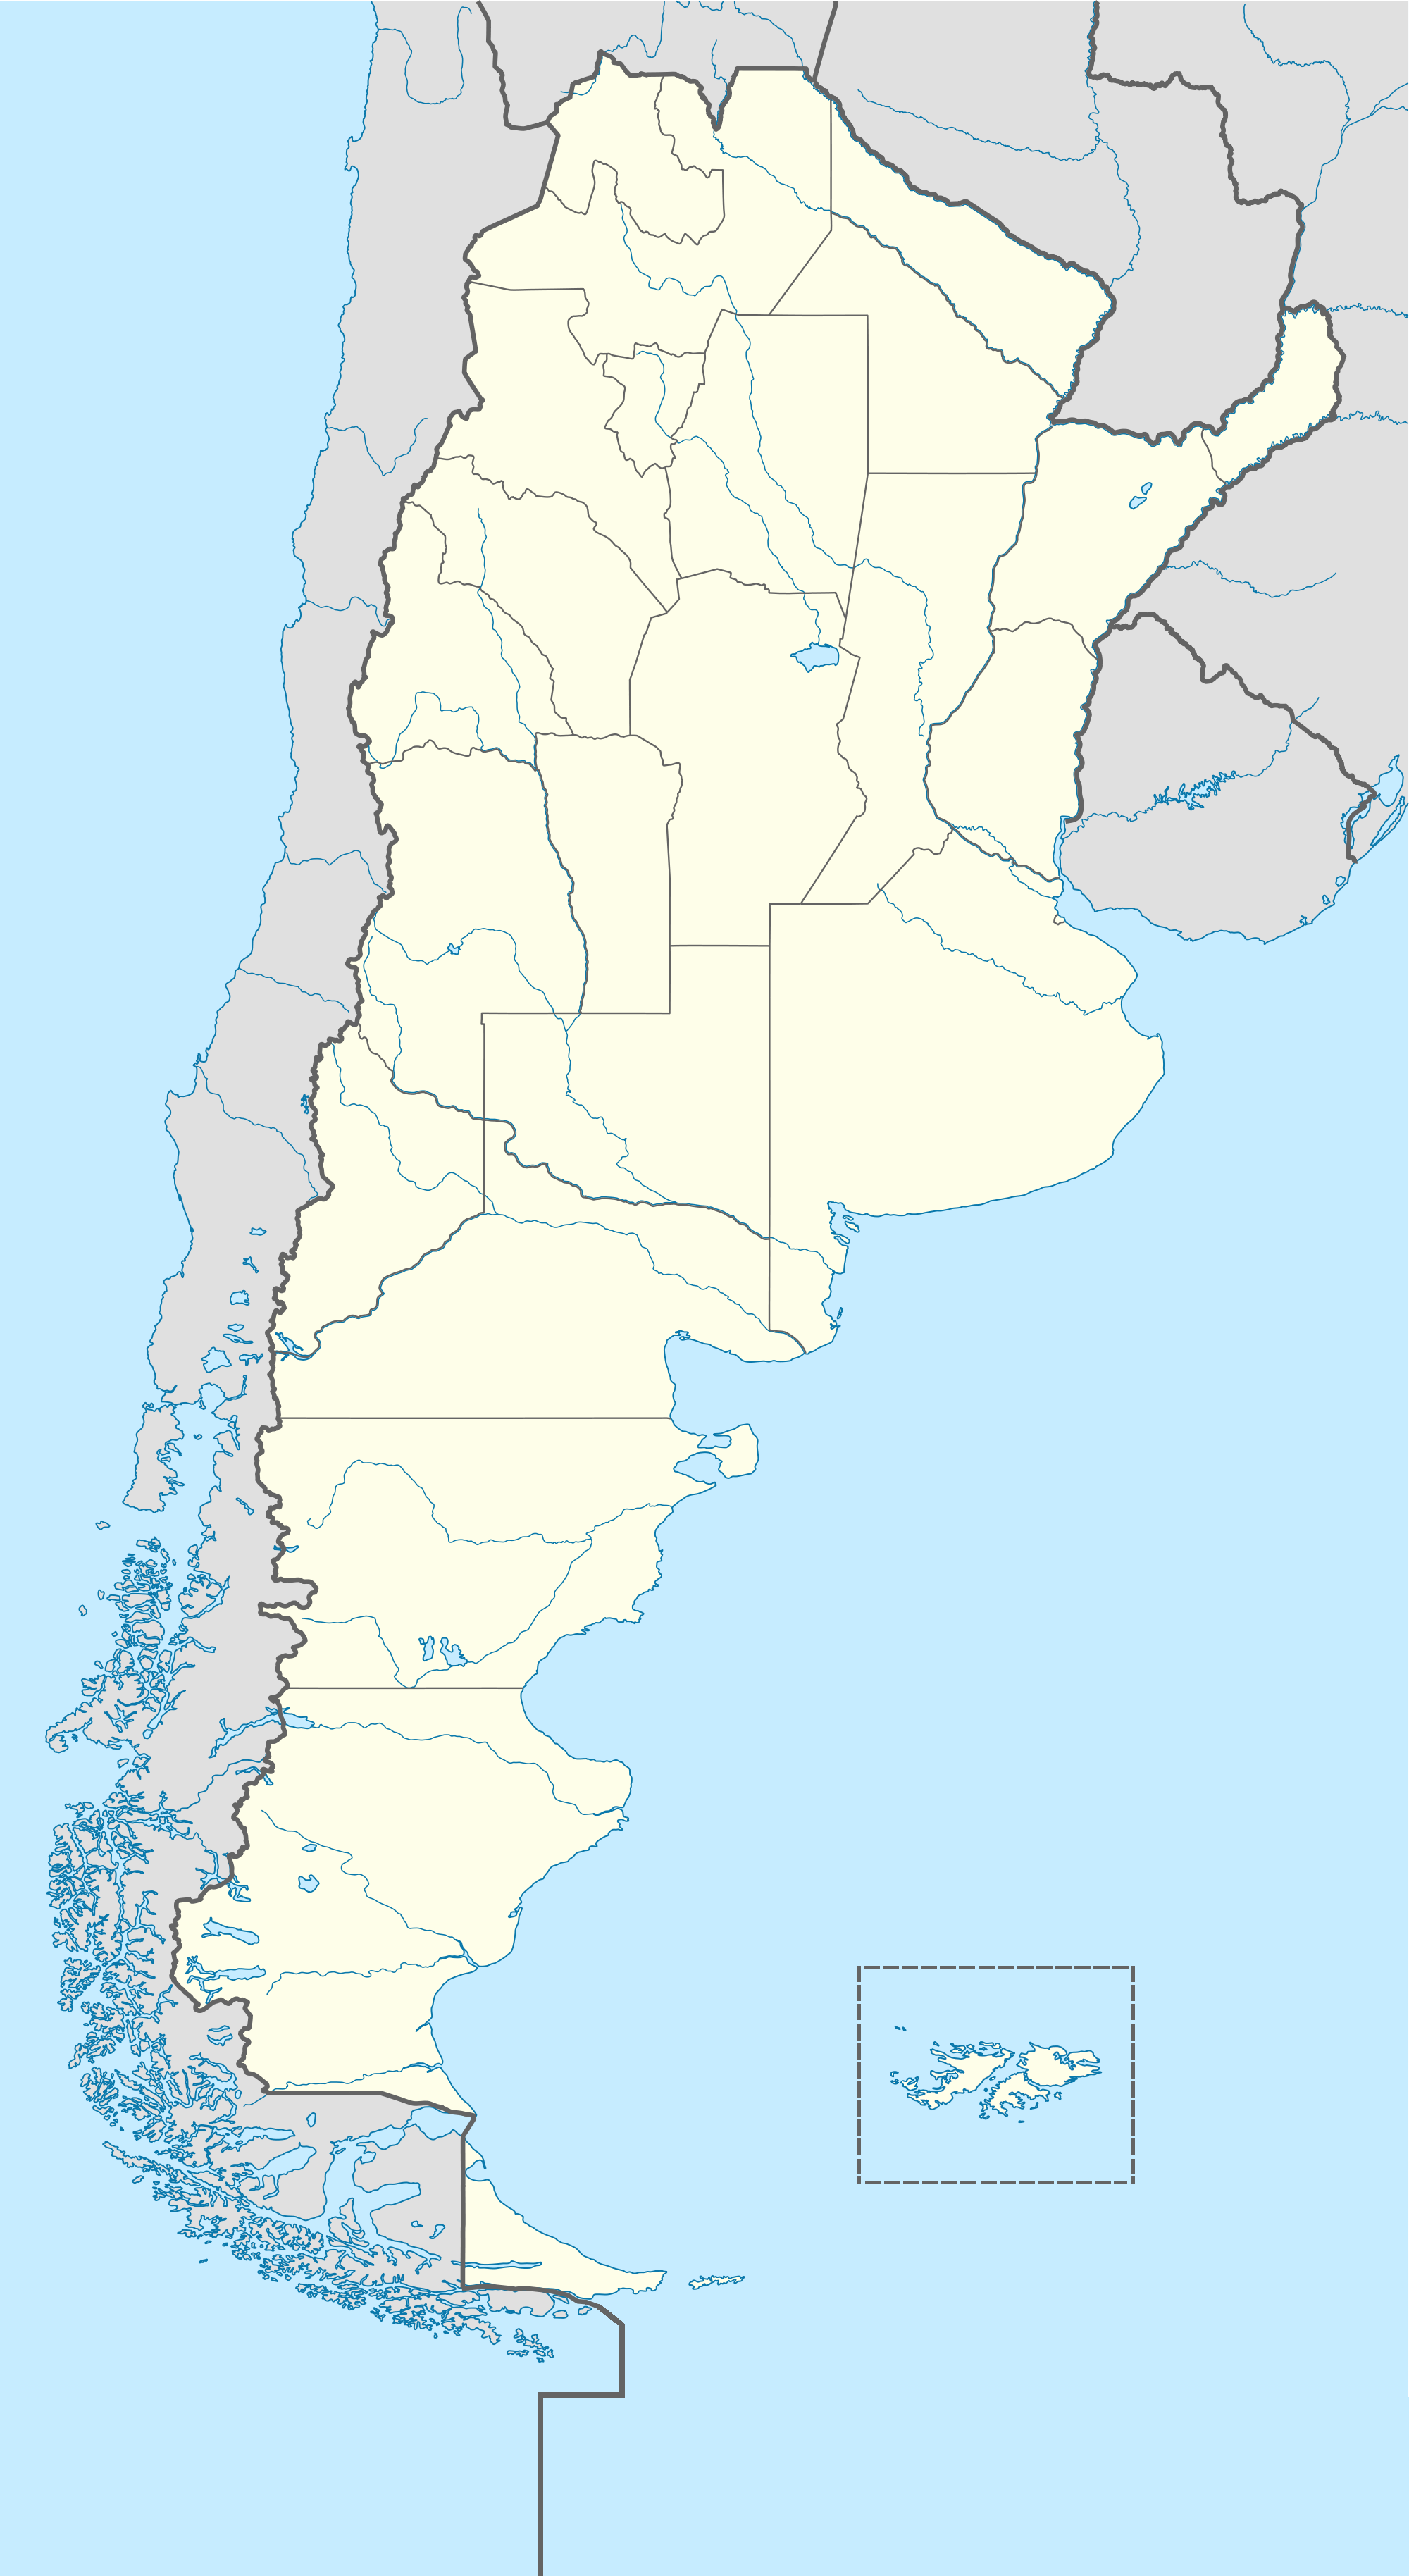 FileArgentina And Falkland Islands Location Mappng Wikimedia - Argentina map png